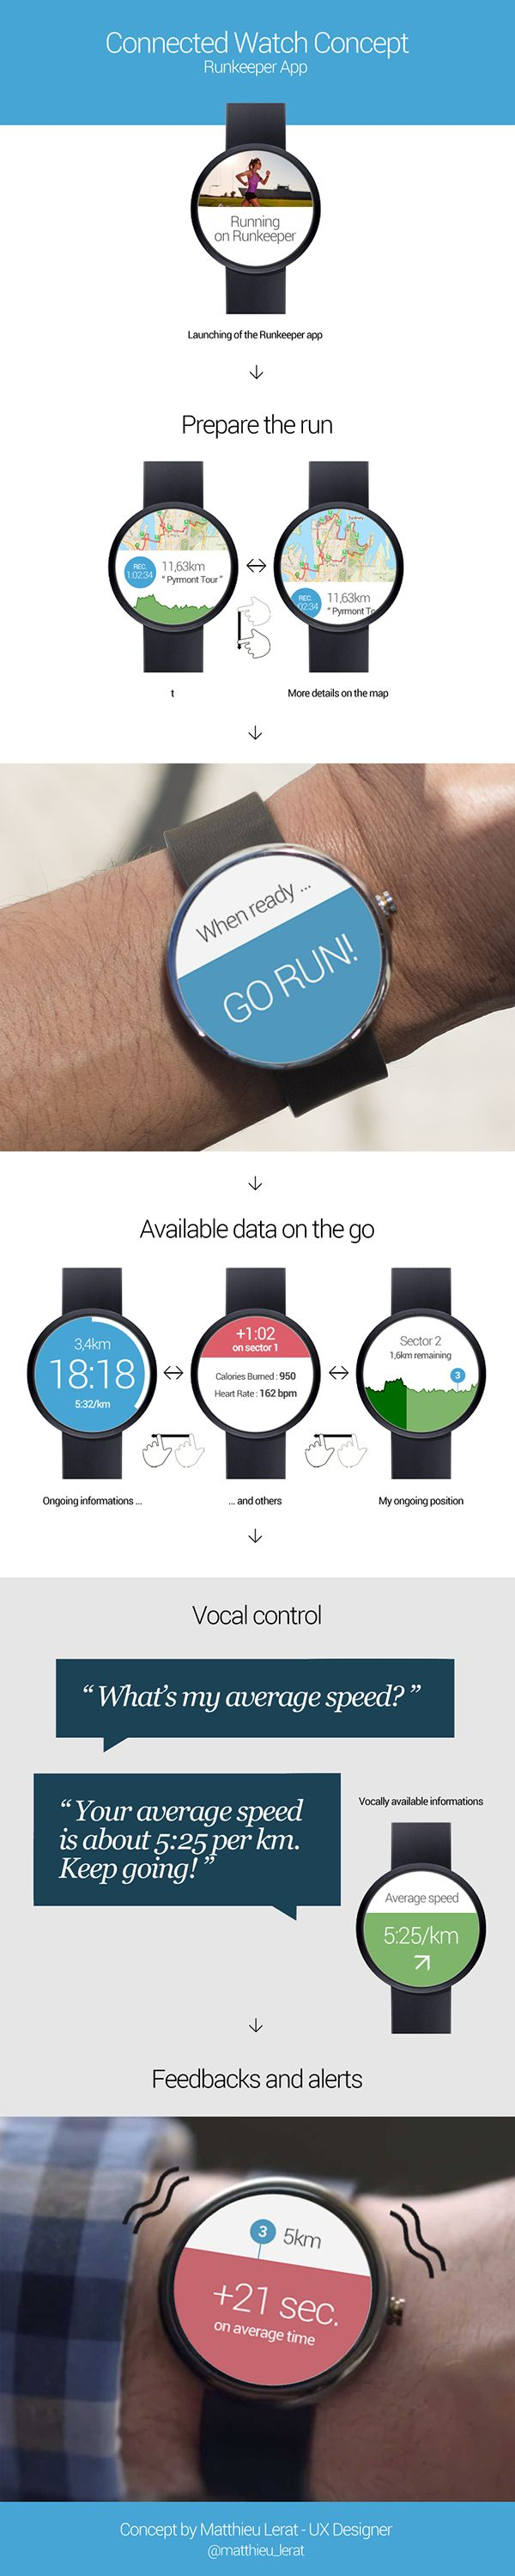 Runkeeper App Concept | Connected Watch - Android Wear by Matthieu Lerat, via Behance